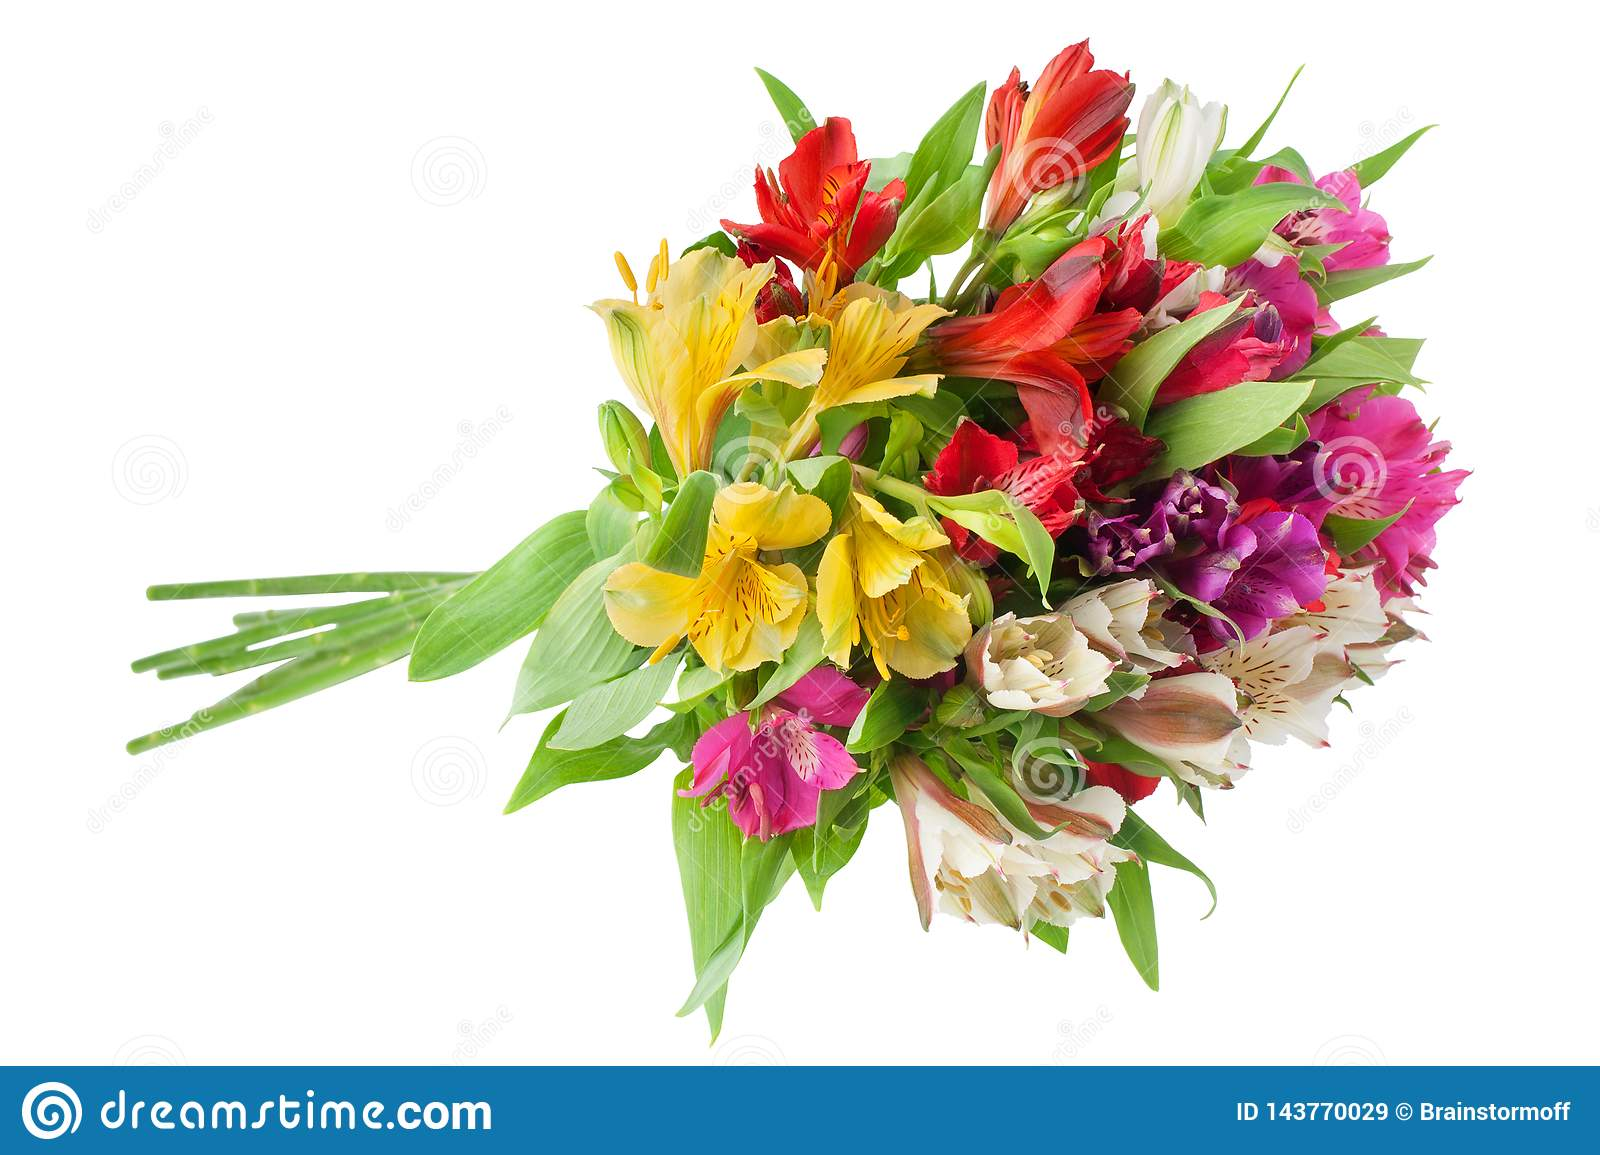 Multicolored alstroemeria lilies flowers round bouquet on white background isolated closeup